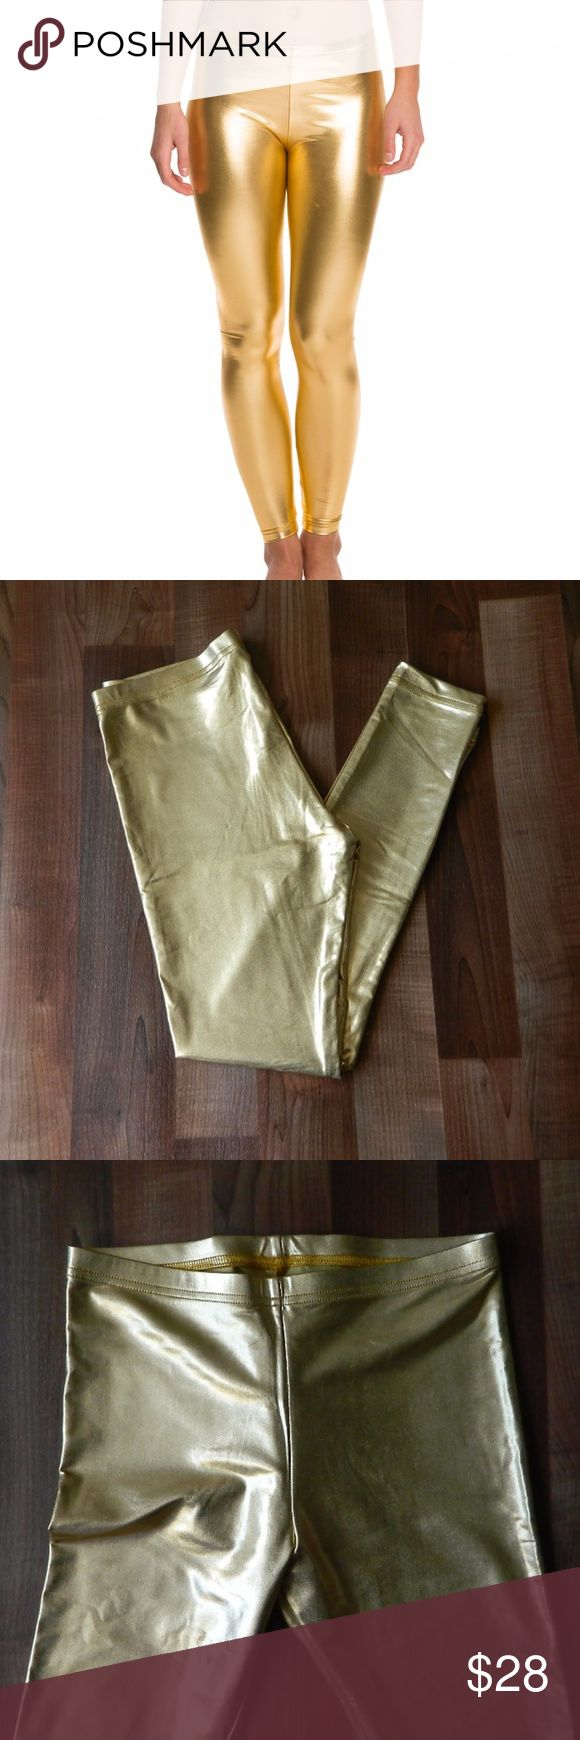 "American Apparel Lame Gold Metallic Leggings Brand new with tags American Apparel leggings. Size large. Made of nylon and elastane. Measurements: 15"" - 20"" waist, one pant is a little longer than the other (IDK why) 26"" inseam on the left leg and 27.5"" inseam on the right leg. Not noticeable if you wear them with boots! :) No trades. Open to reasonable offers. Happy Poshing! American Apparel Pants Leggings"